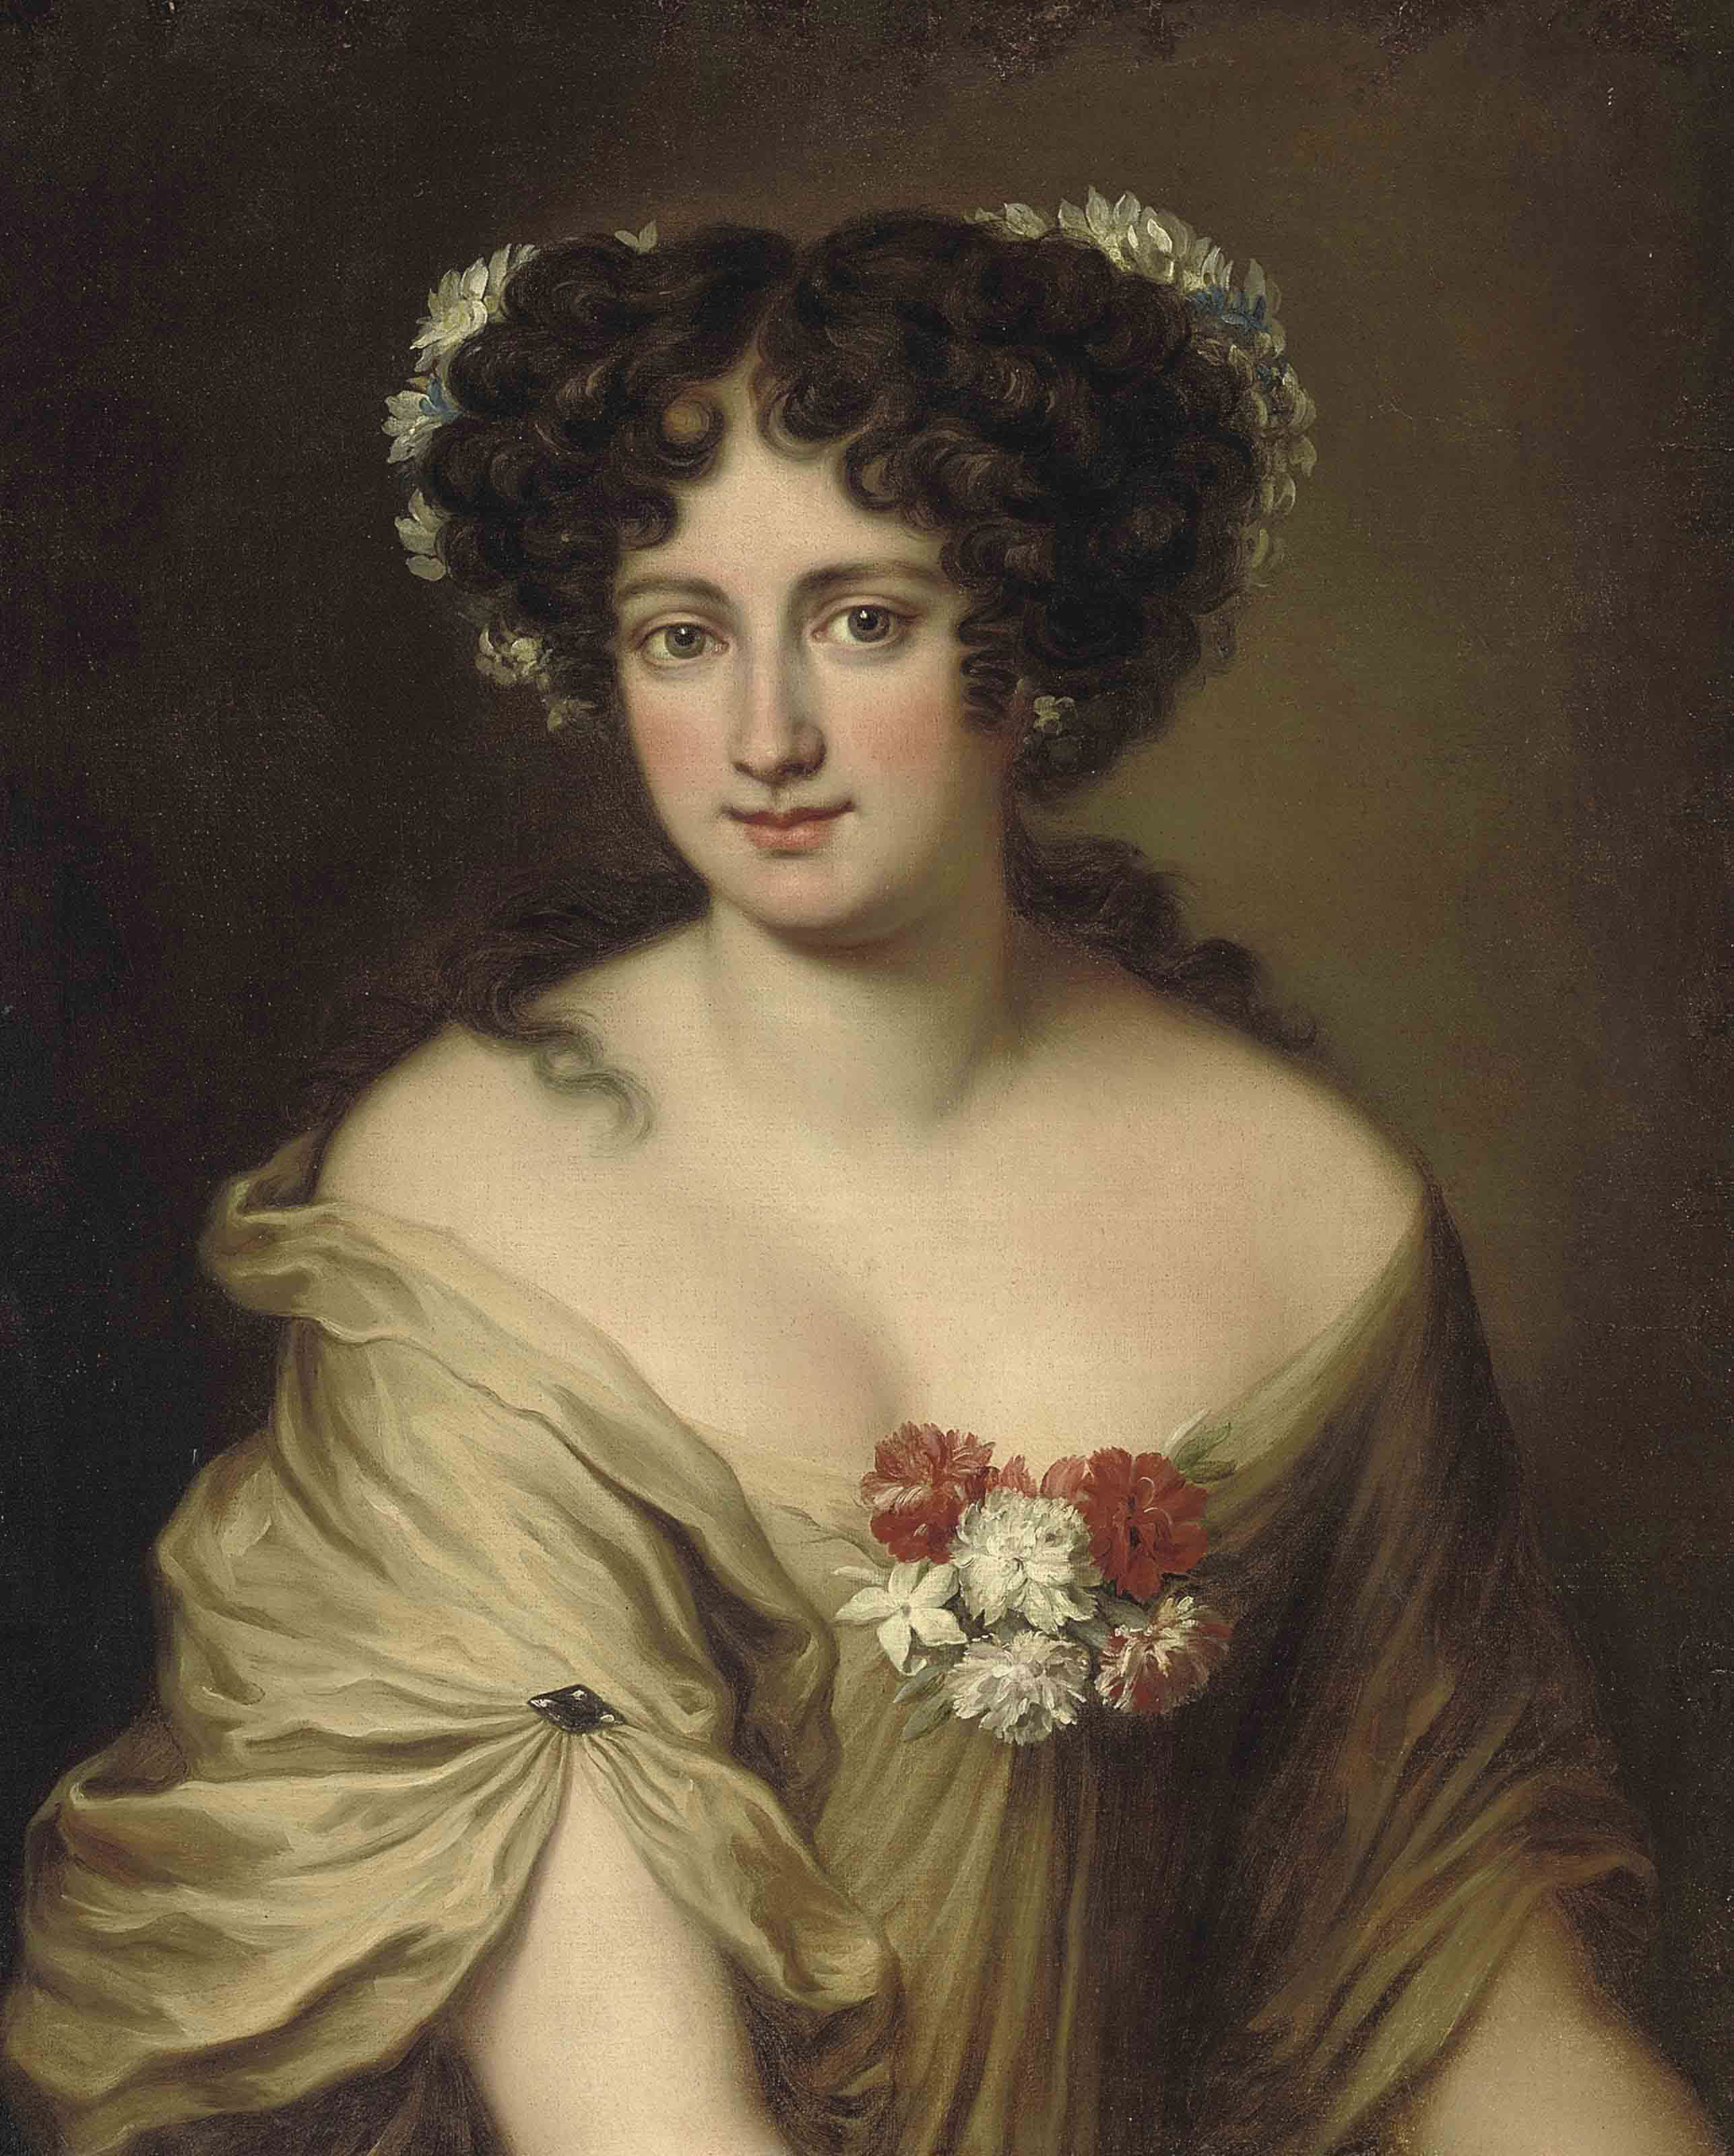 Portrait of Contessa Ortensia Ianni Stella, bust-length, in an ivory chemise, with flowers in her hair